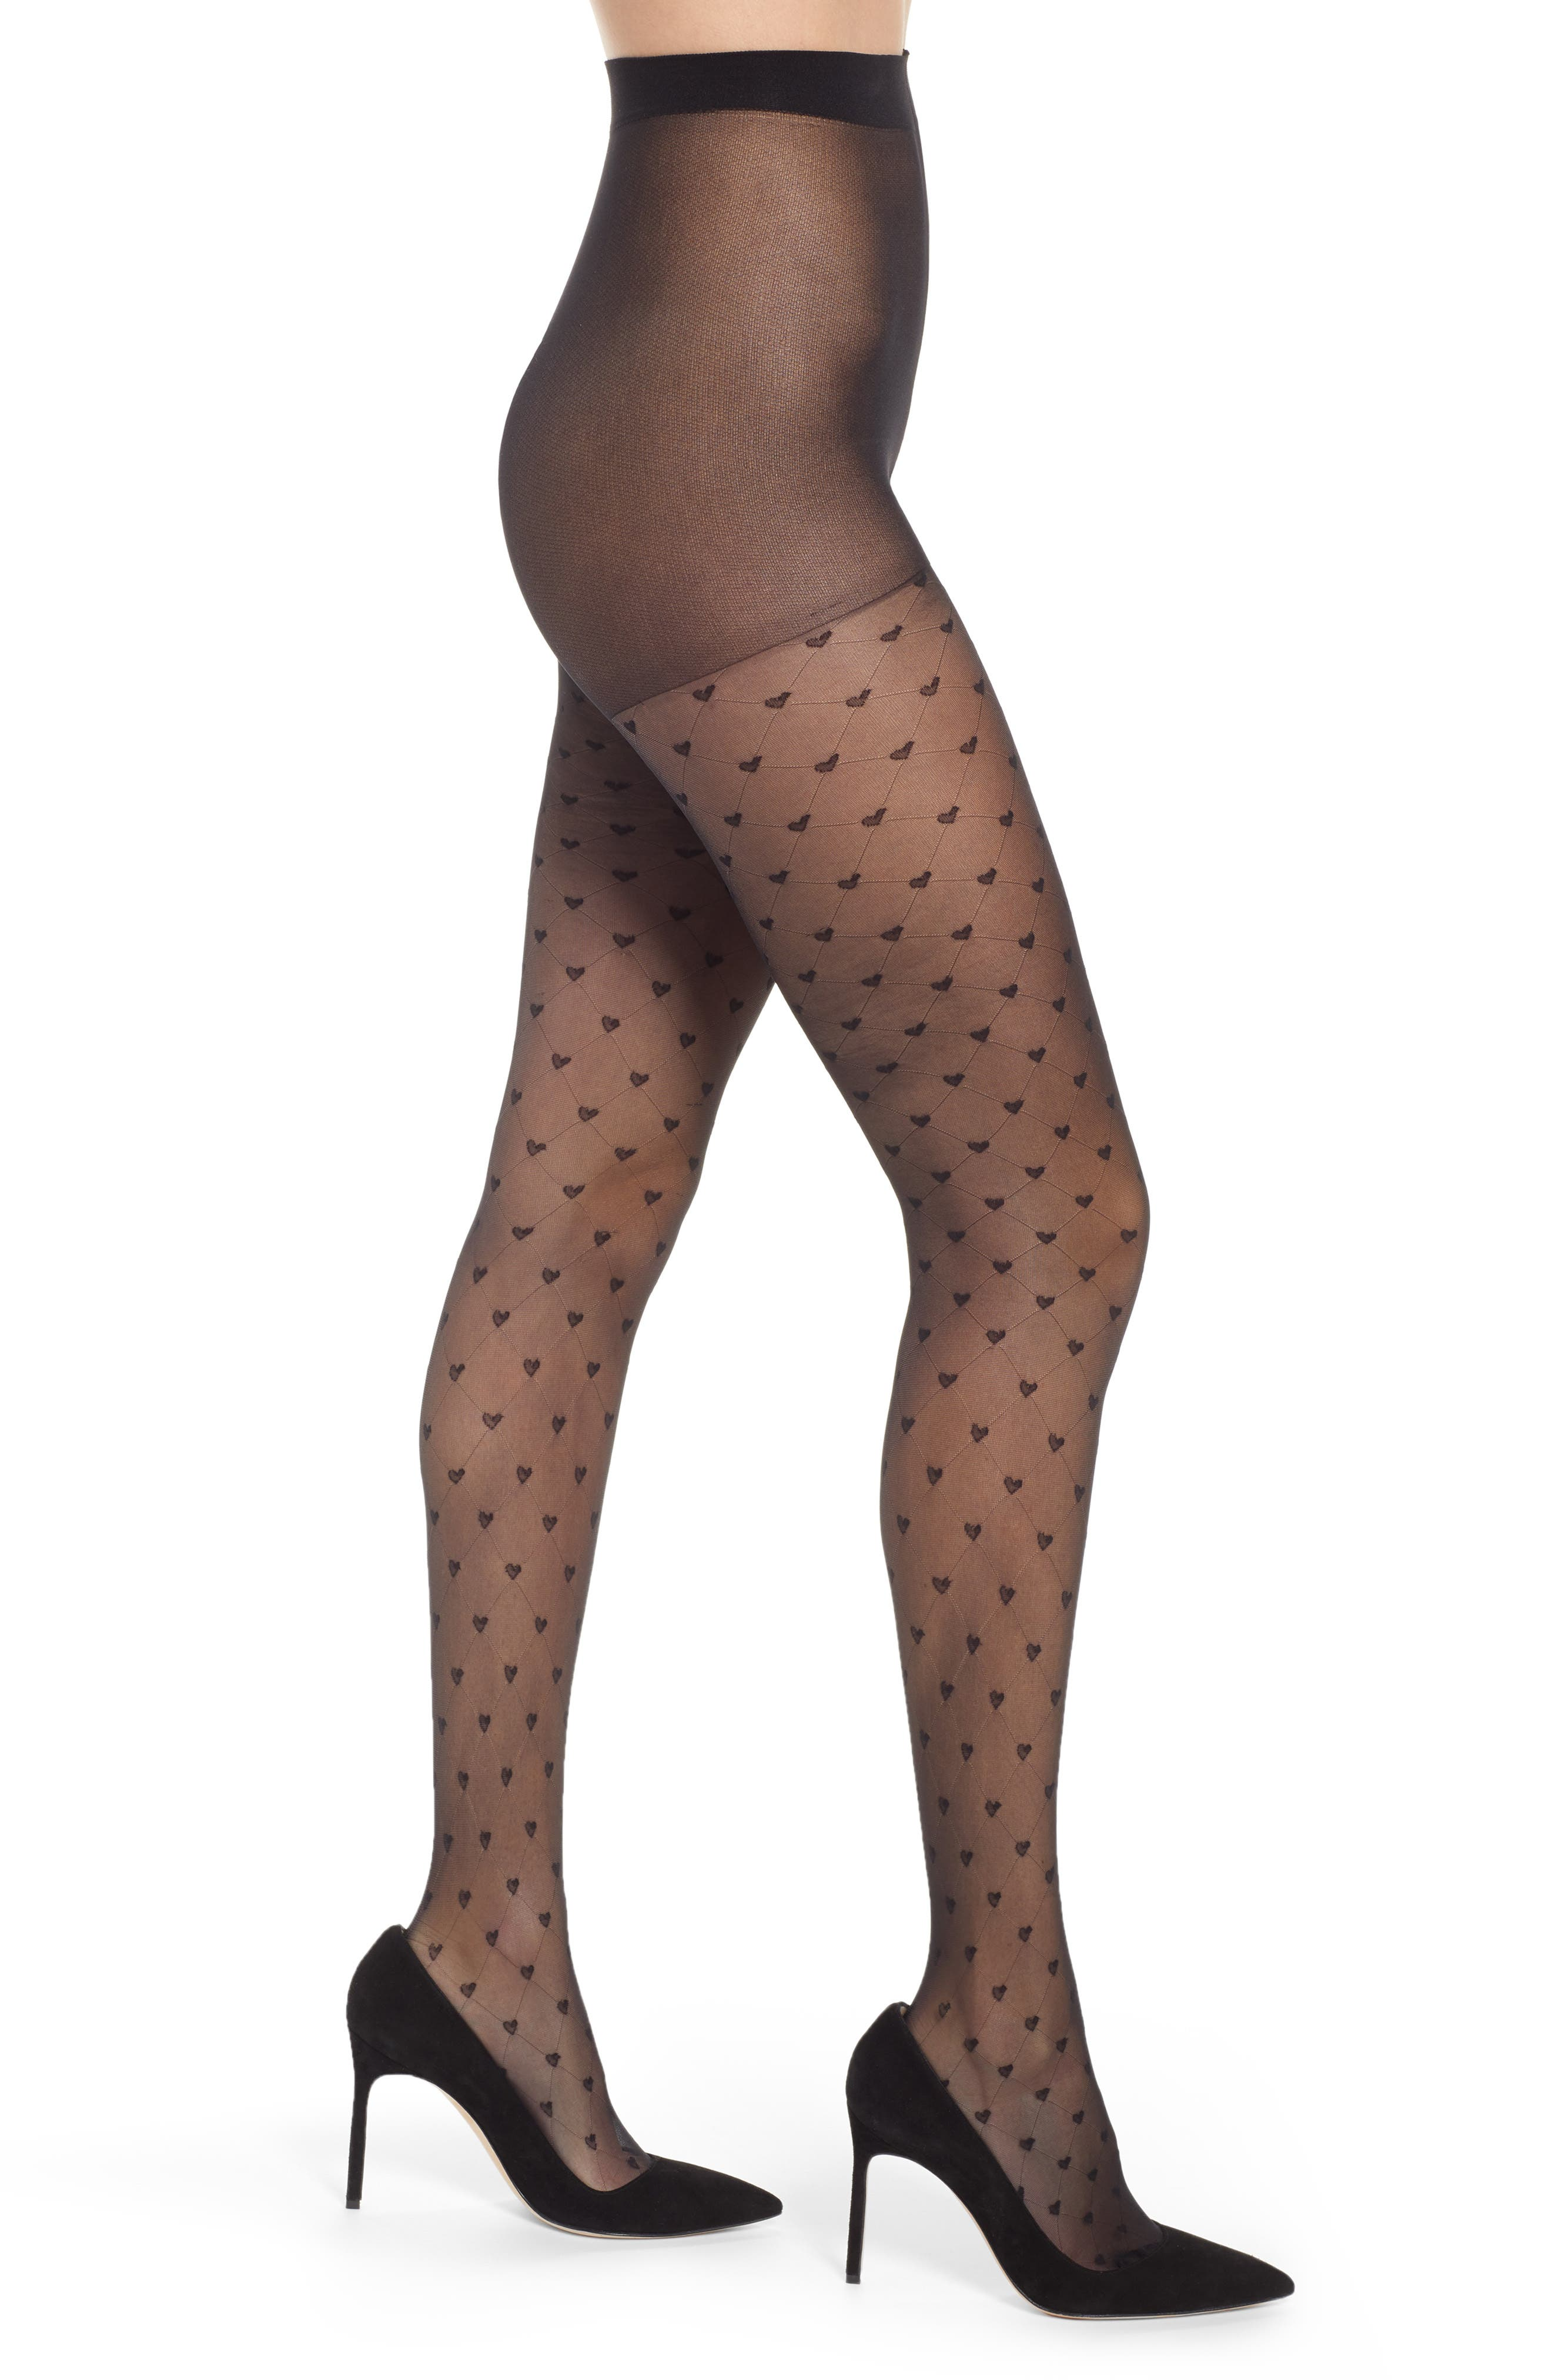 f3a1893f5 pretty polly hosiery socks, leggings & hosiery for women - Buy best women's pretty  polly hosiery socks, leggings & hosiery on Cools.com Shop